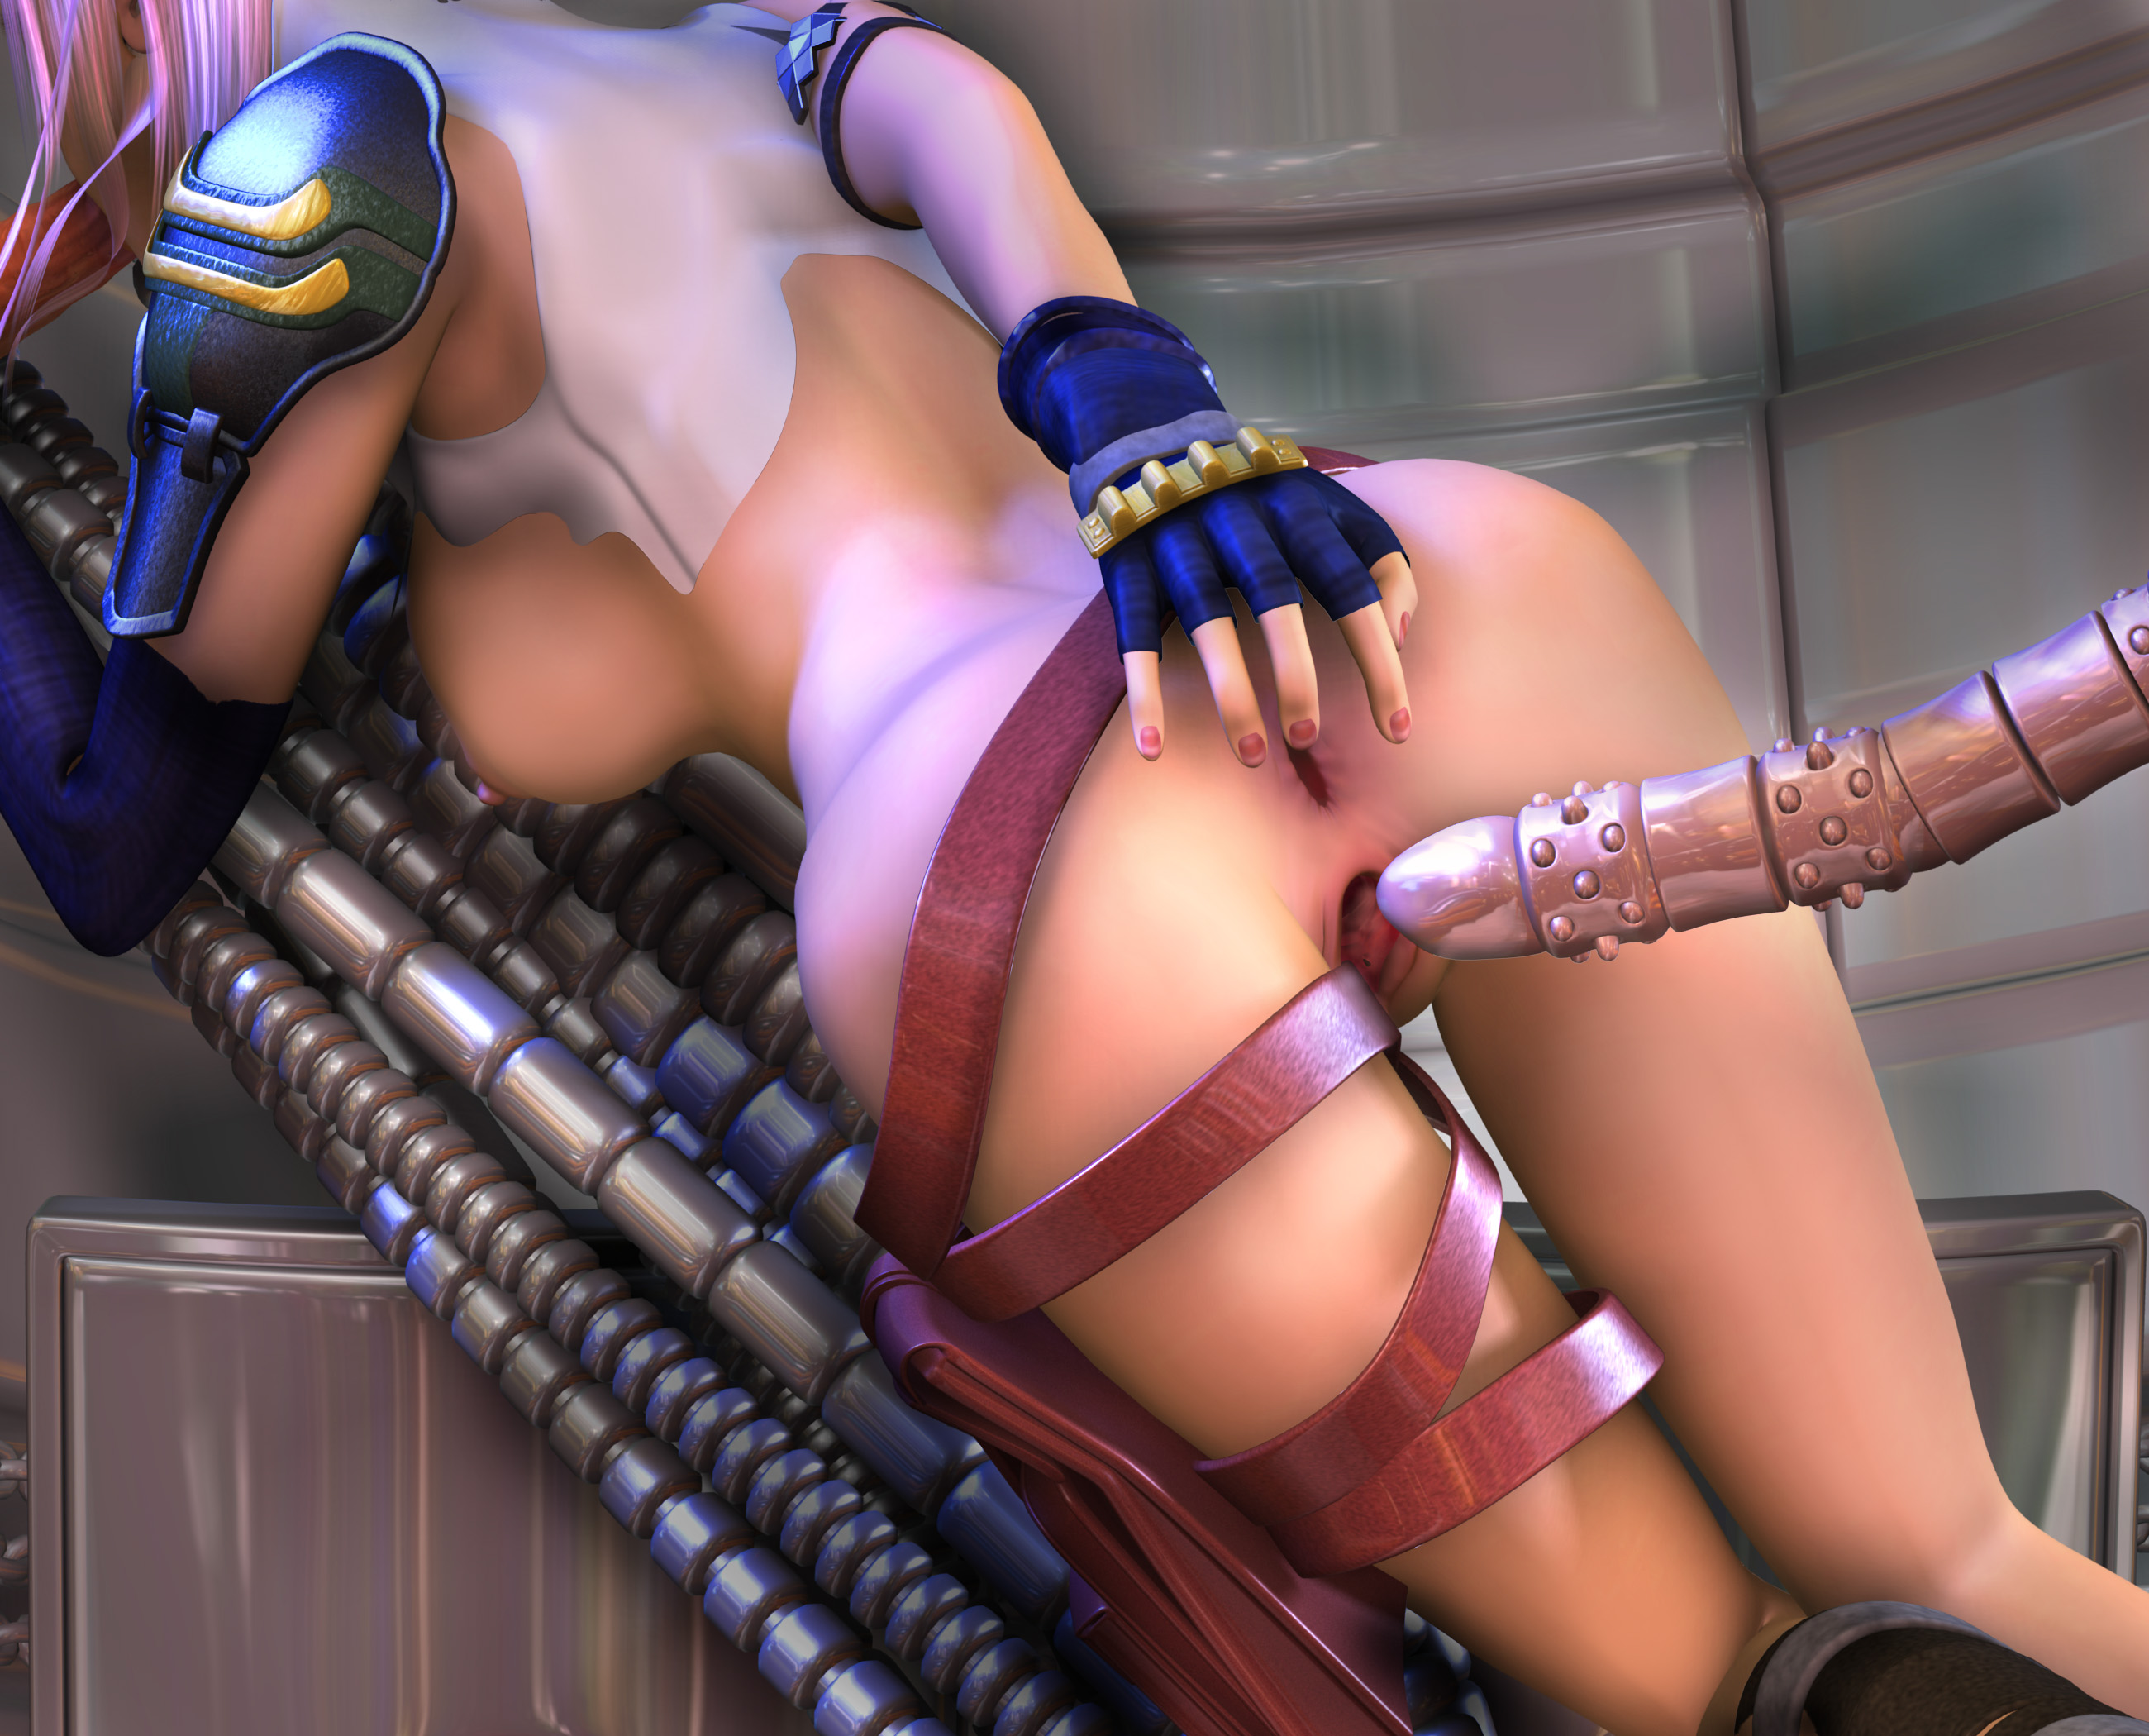 Video game girls 3d porn pics erotic gallery